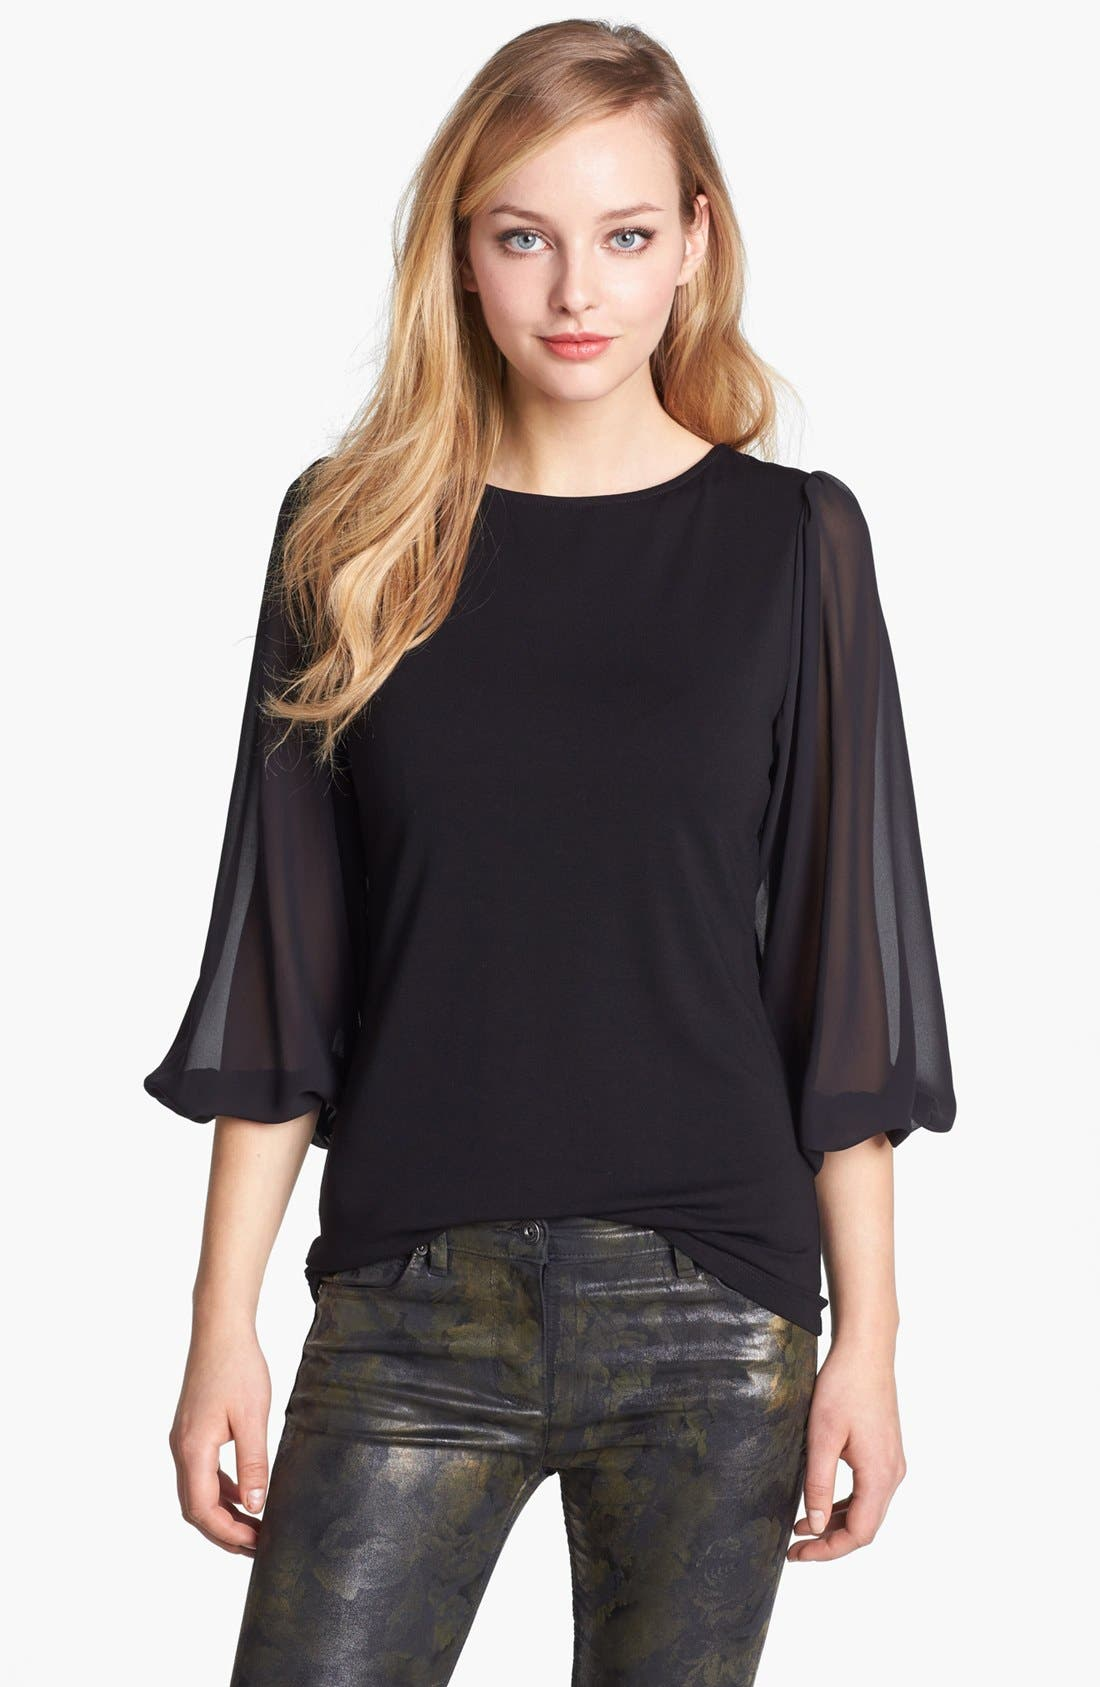 Alternate Image 1 Selected - Vince Camuto Chiffon Sleeve Knit Top (Petite)